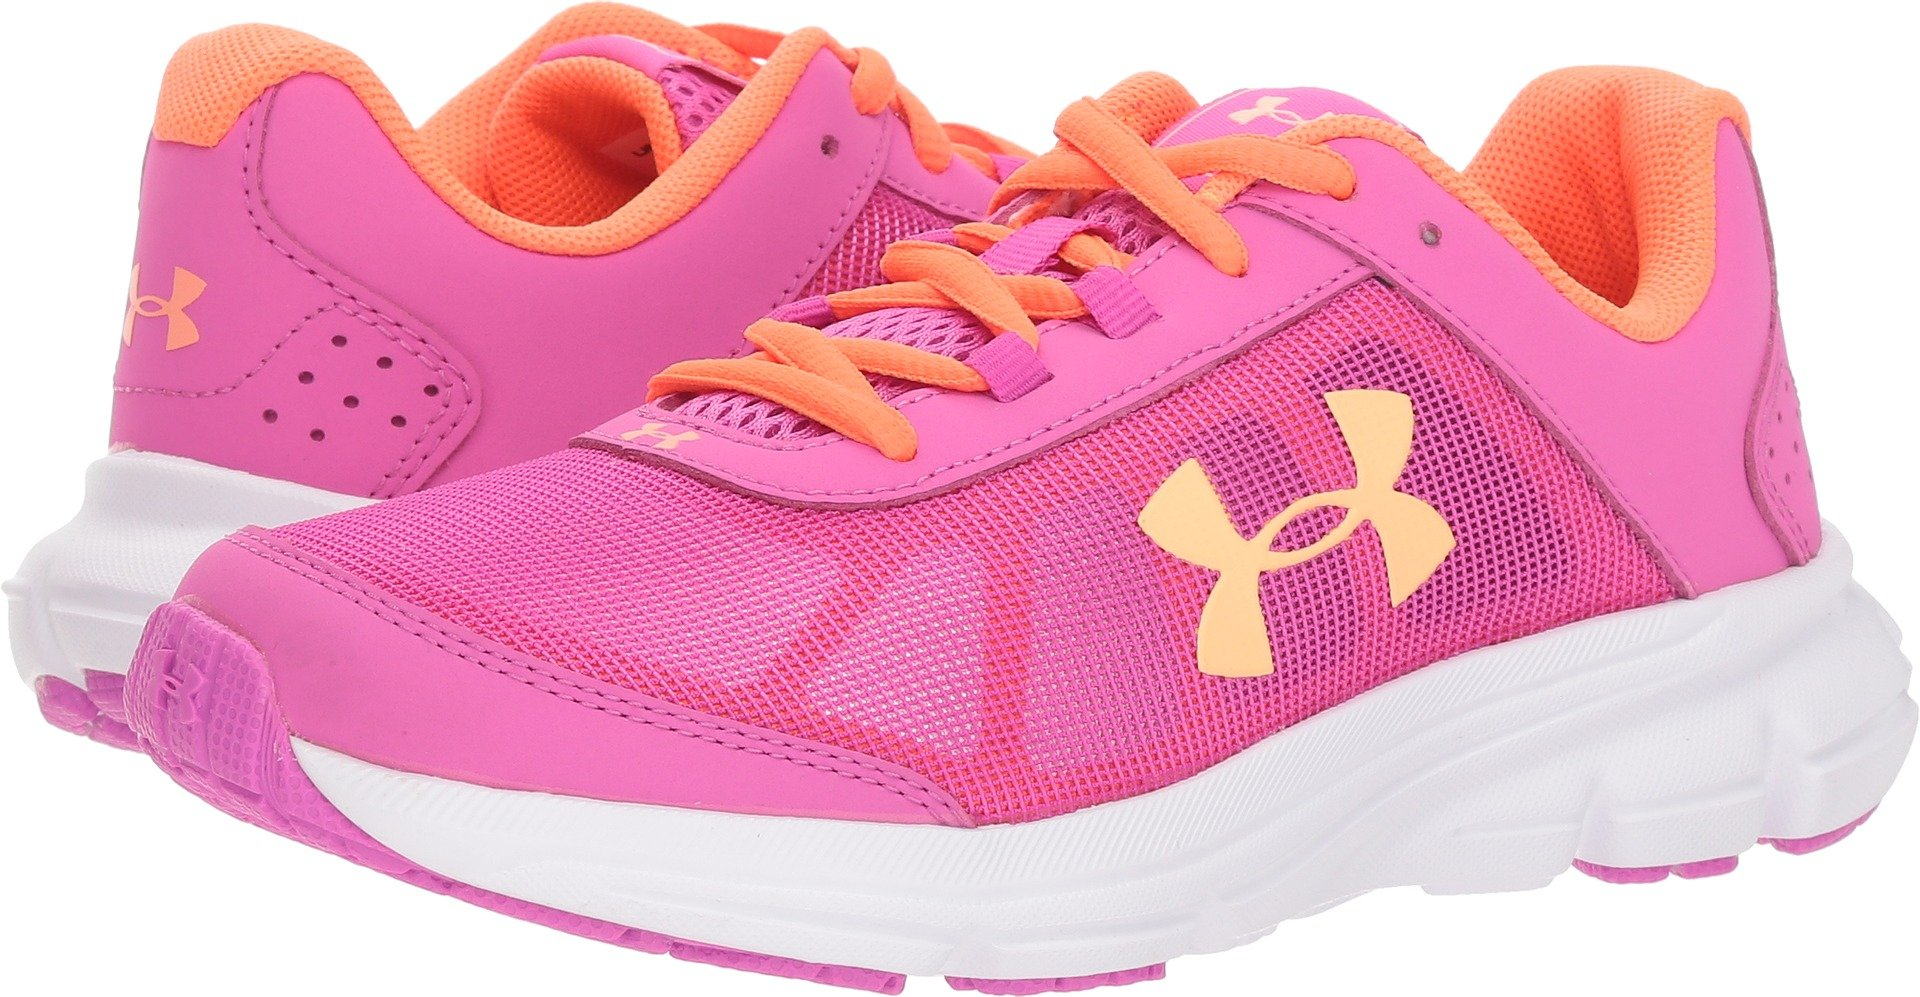 Under Armour Girls' Grade School Rave 2 Sneaker 502/Fluo Fuchsia, 3.5 by Under Armour (Image #1)